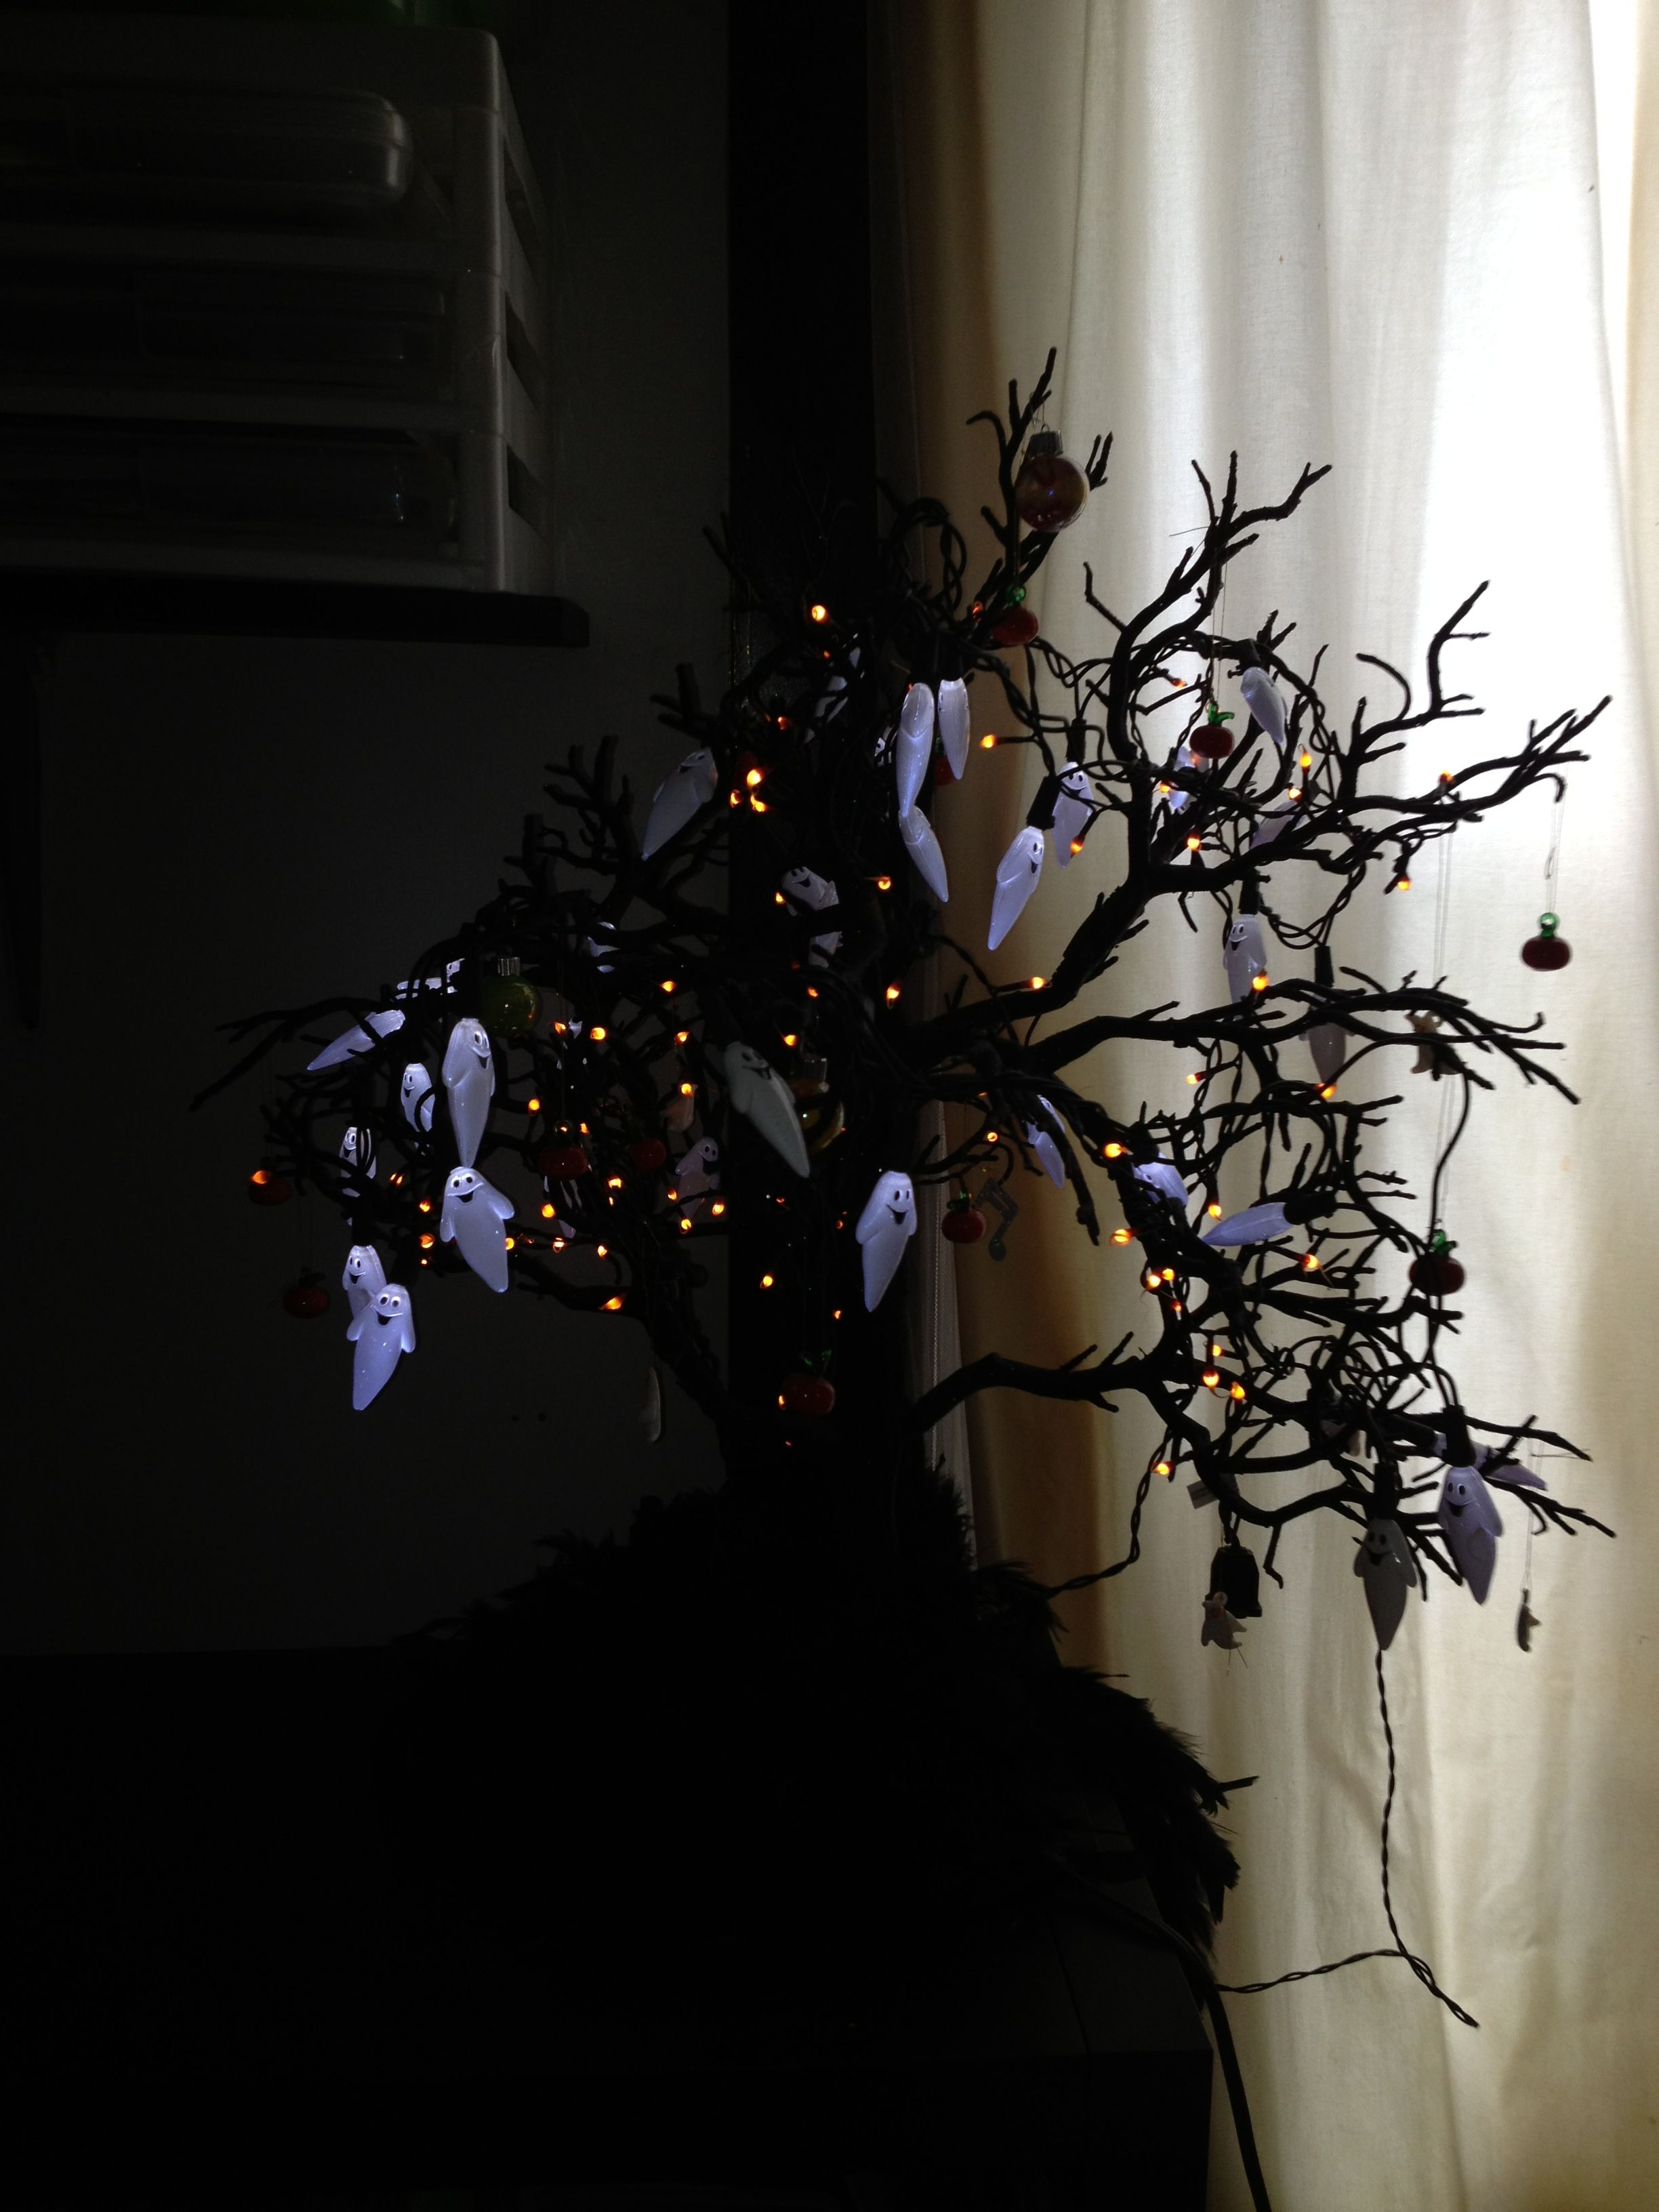 Silver balls with ghosts? Ghost lights, Halloween trees